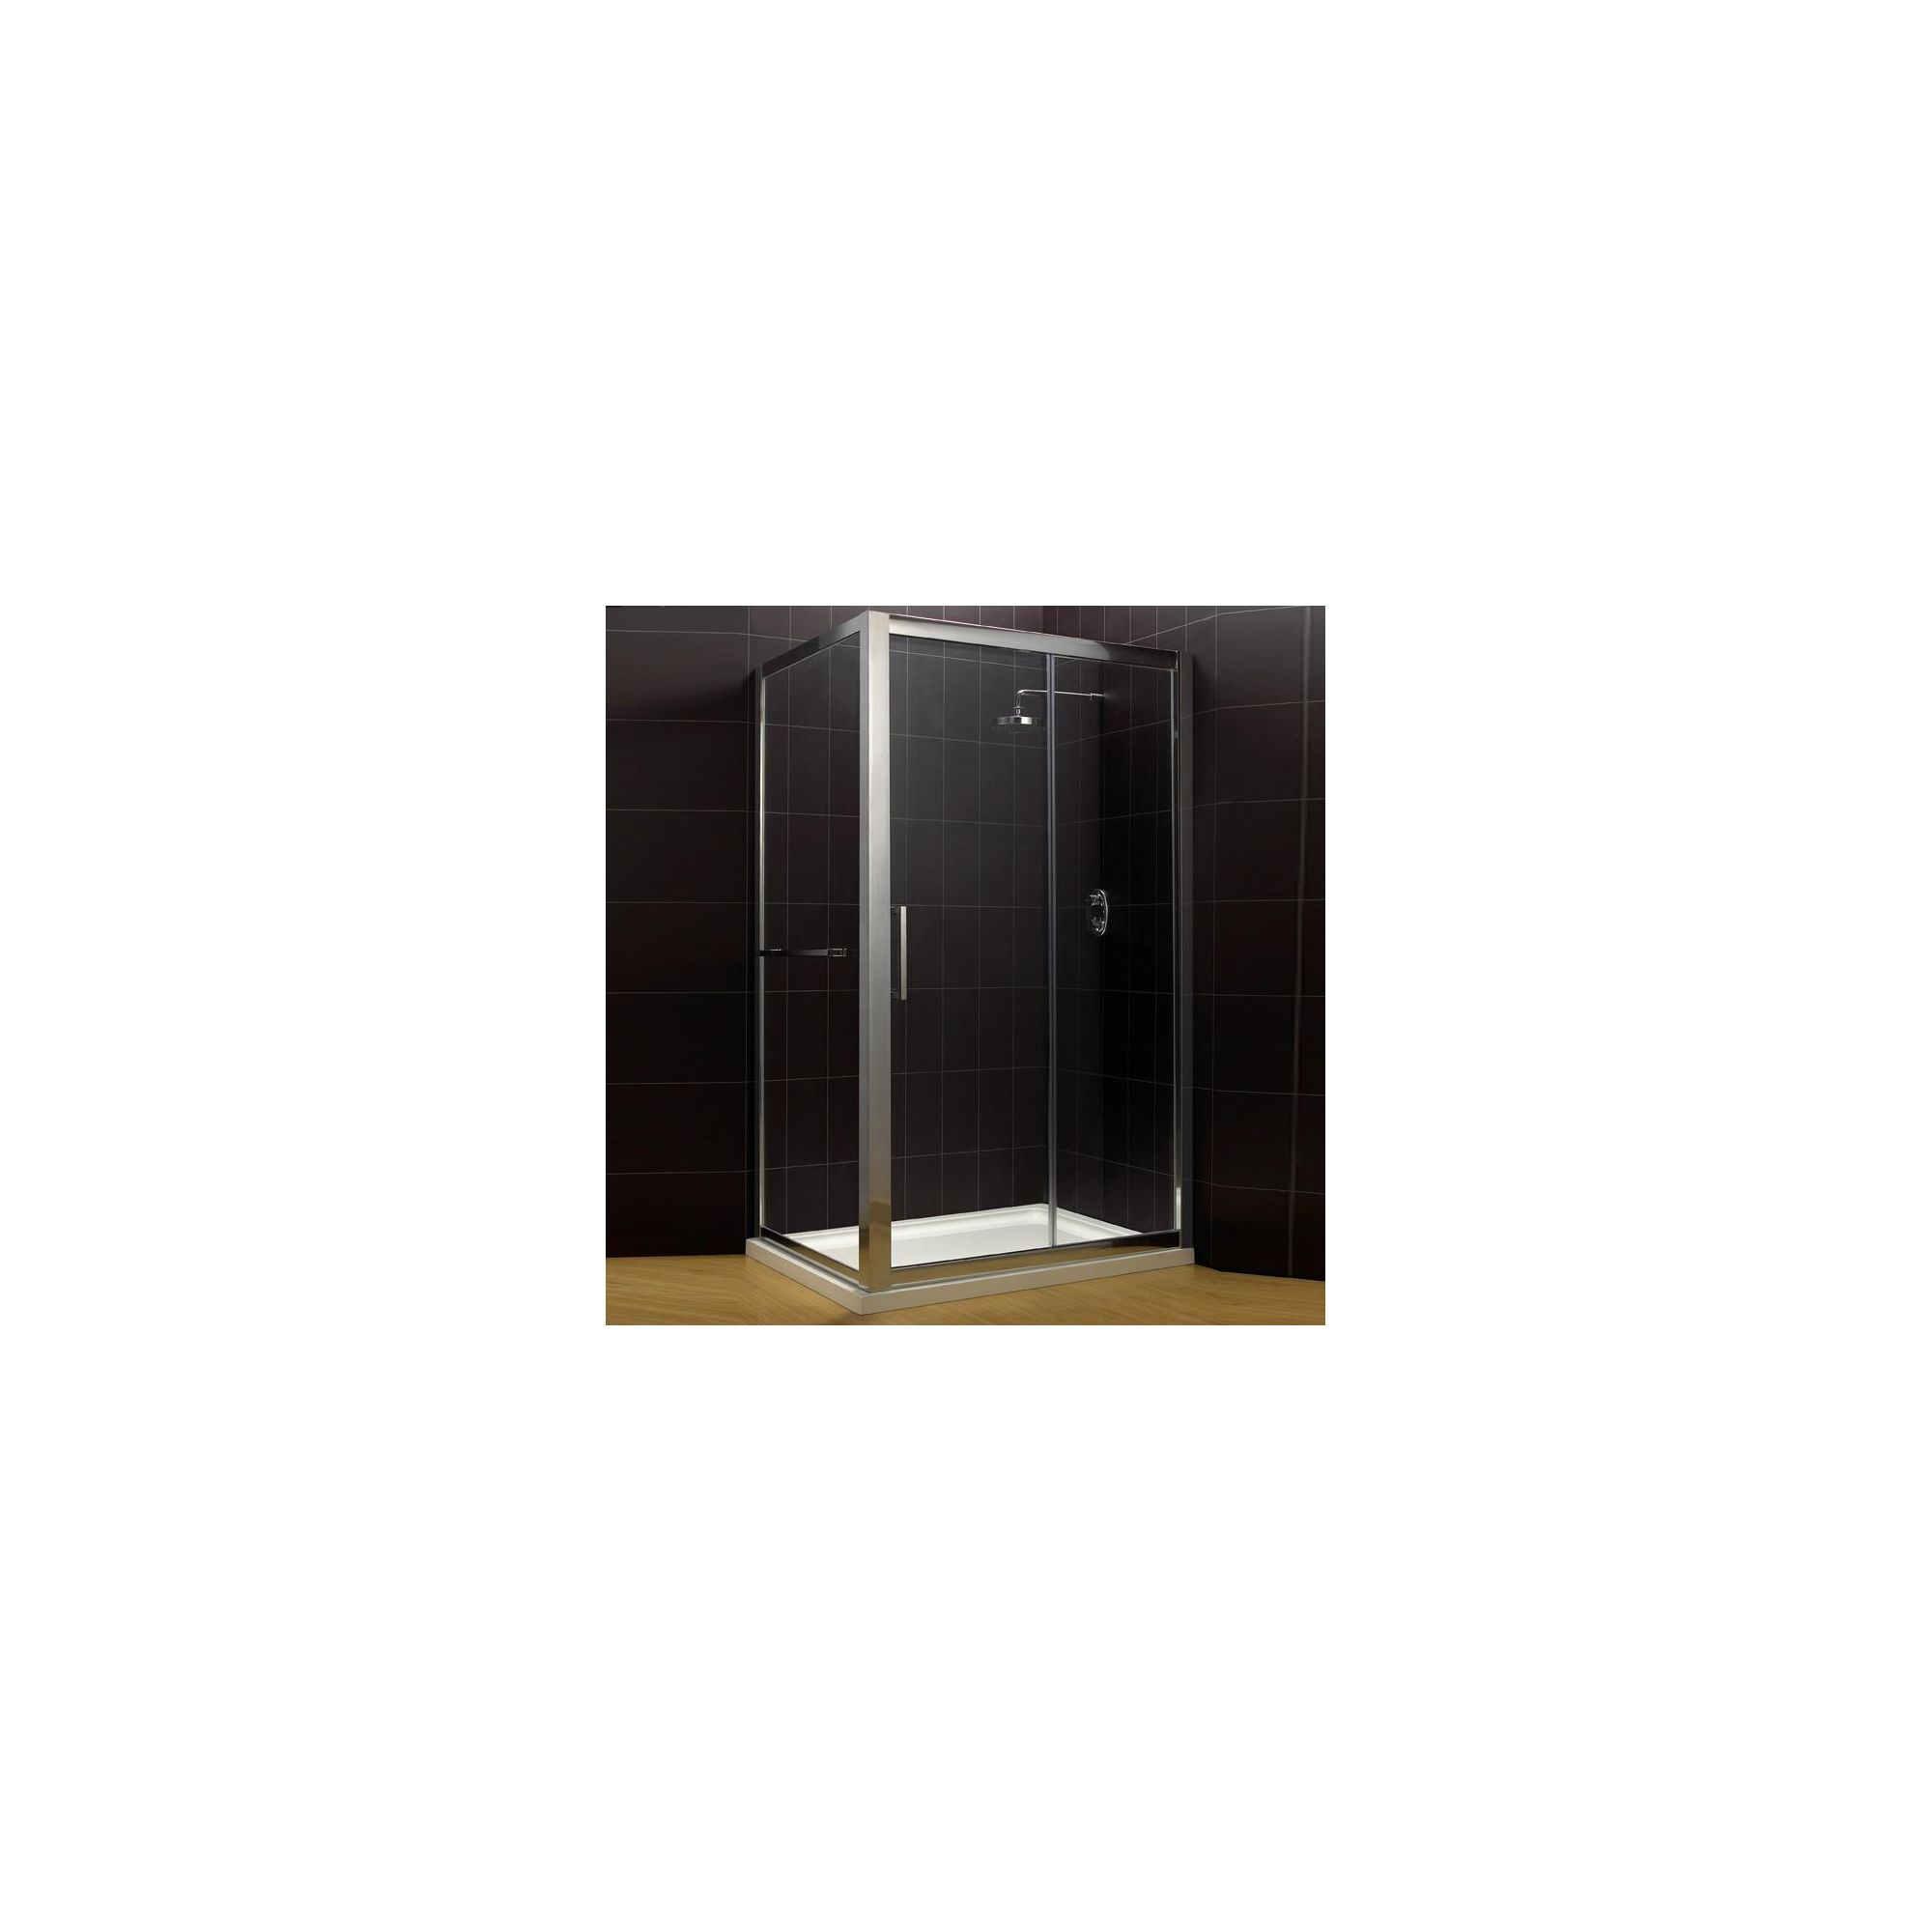 Duchy Supreme Silver Sliding Door Shower Enclosure with Towel Rail, 1000mm x 900mm, Standard Tray, 8mm Glass at Tesco Direct